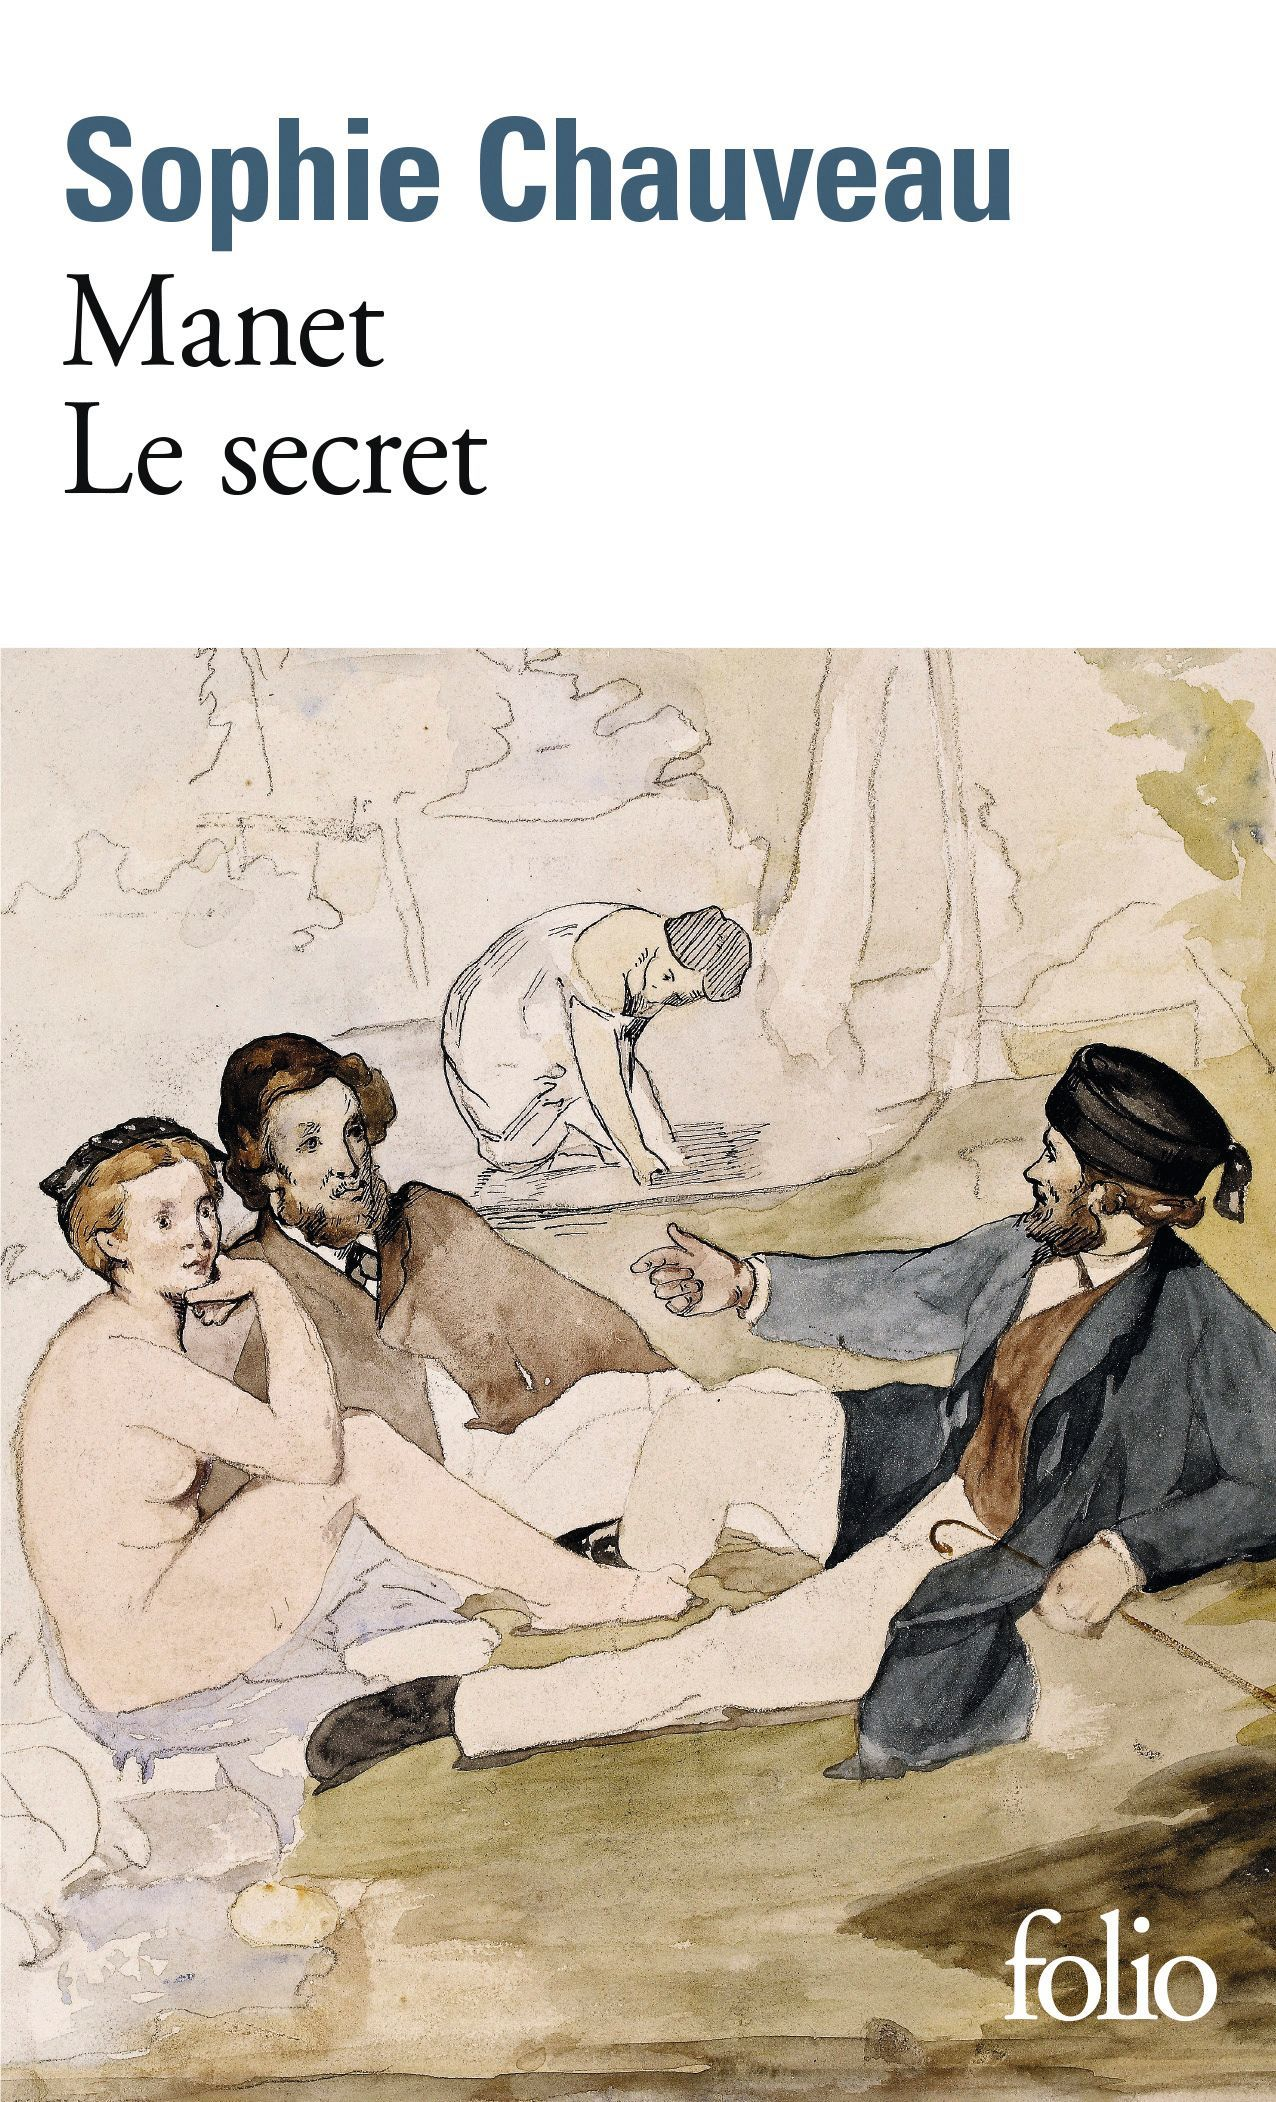 Sophie Chauveau, Manet, le secret, 2014